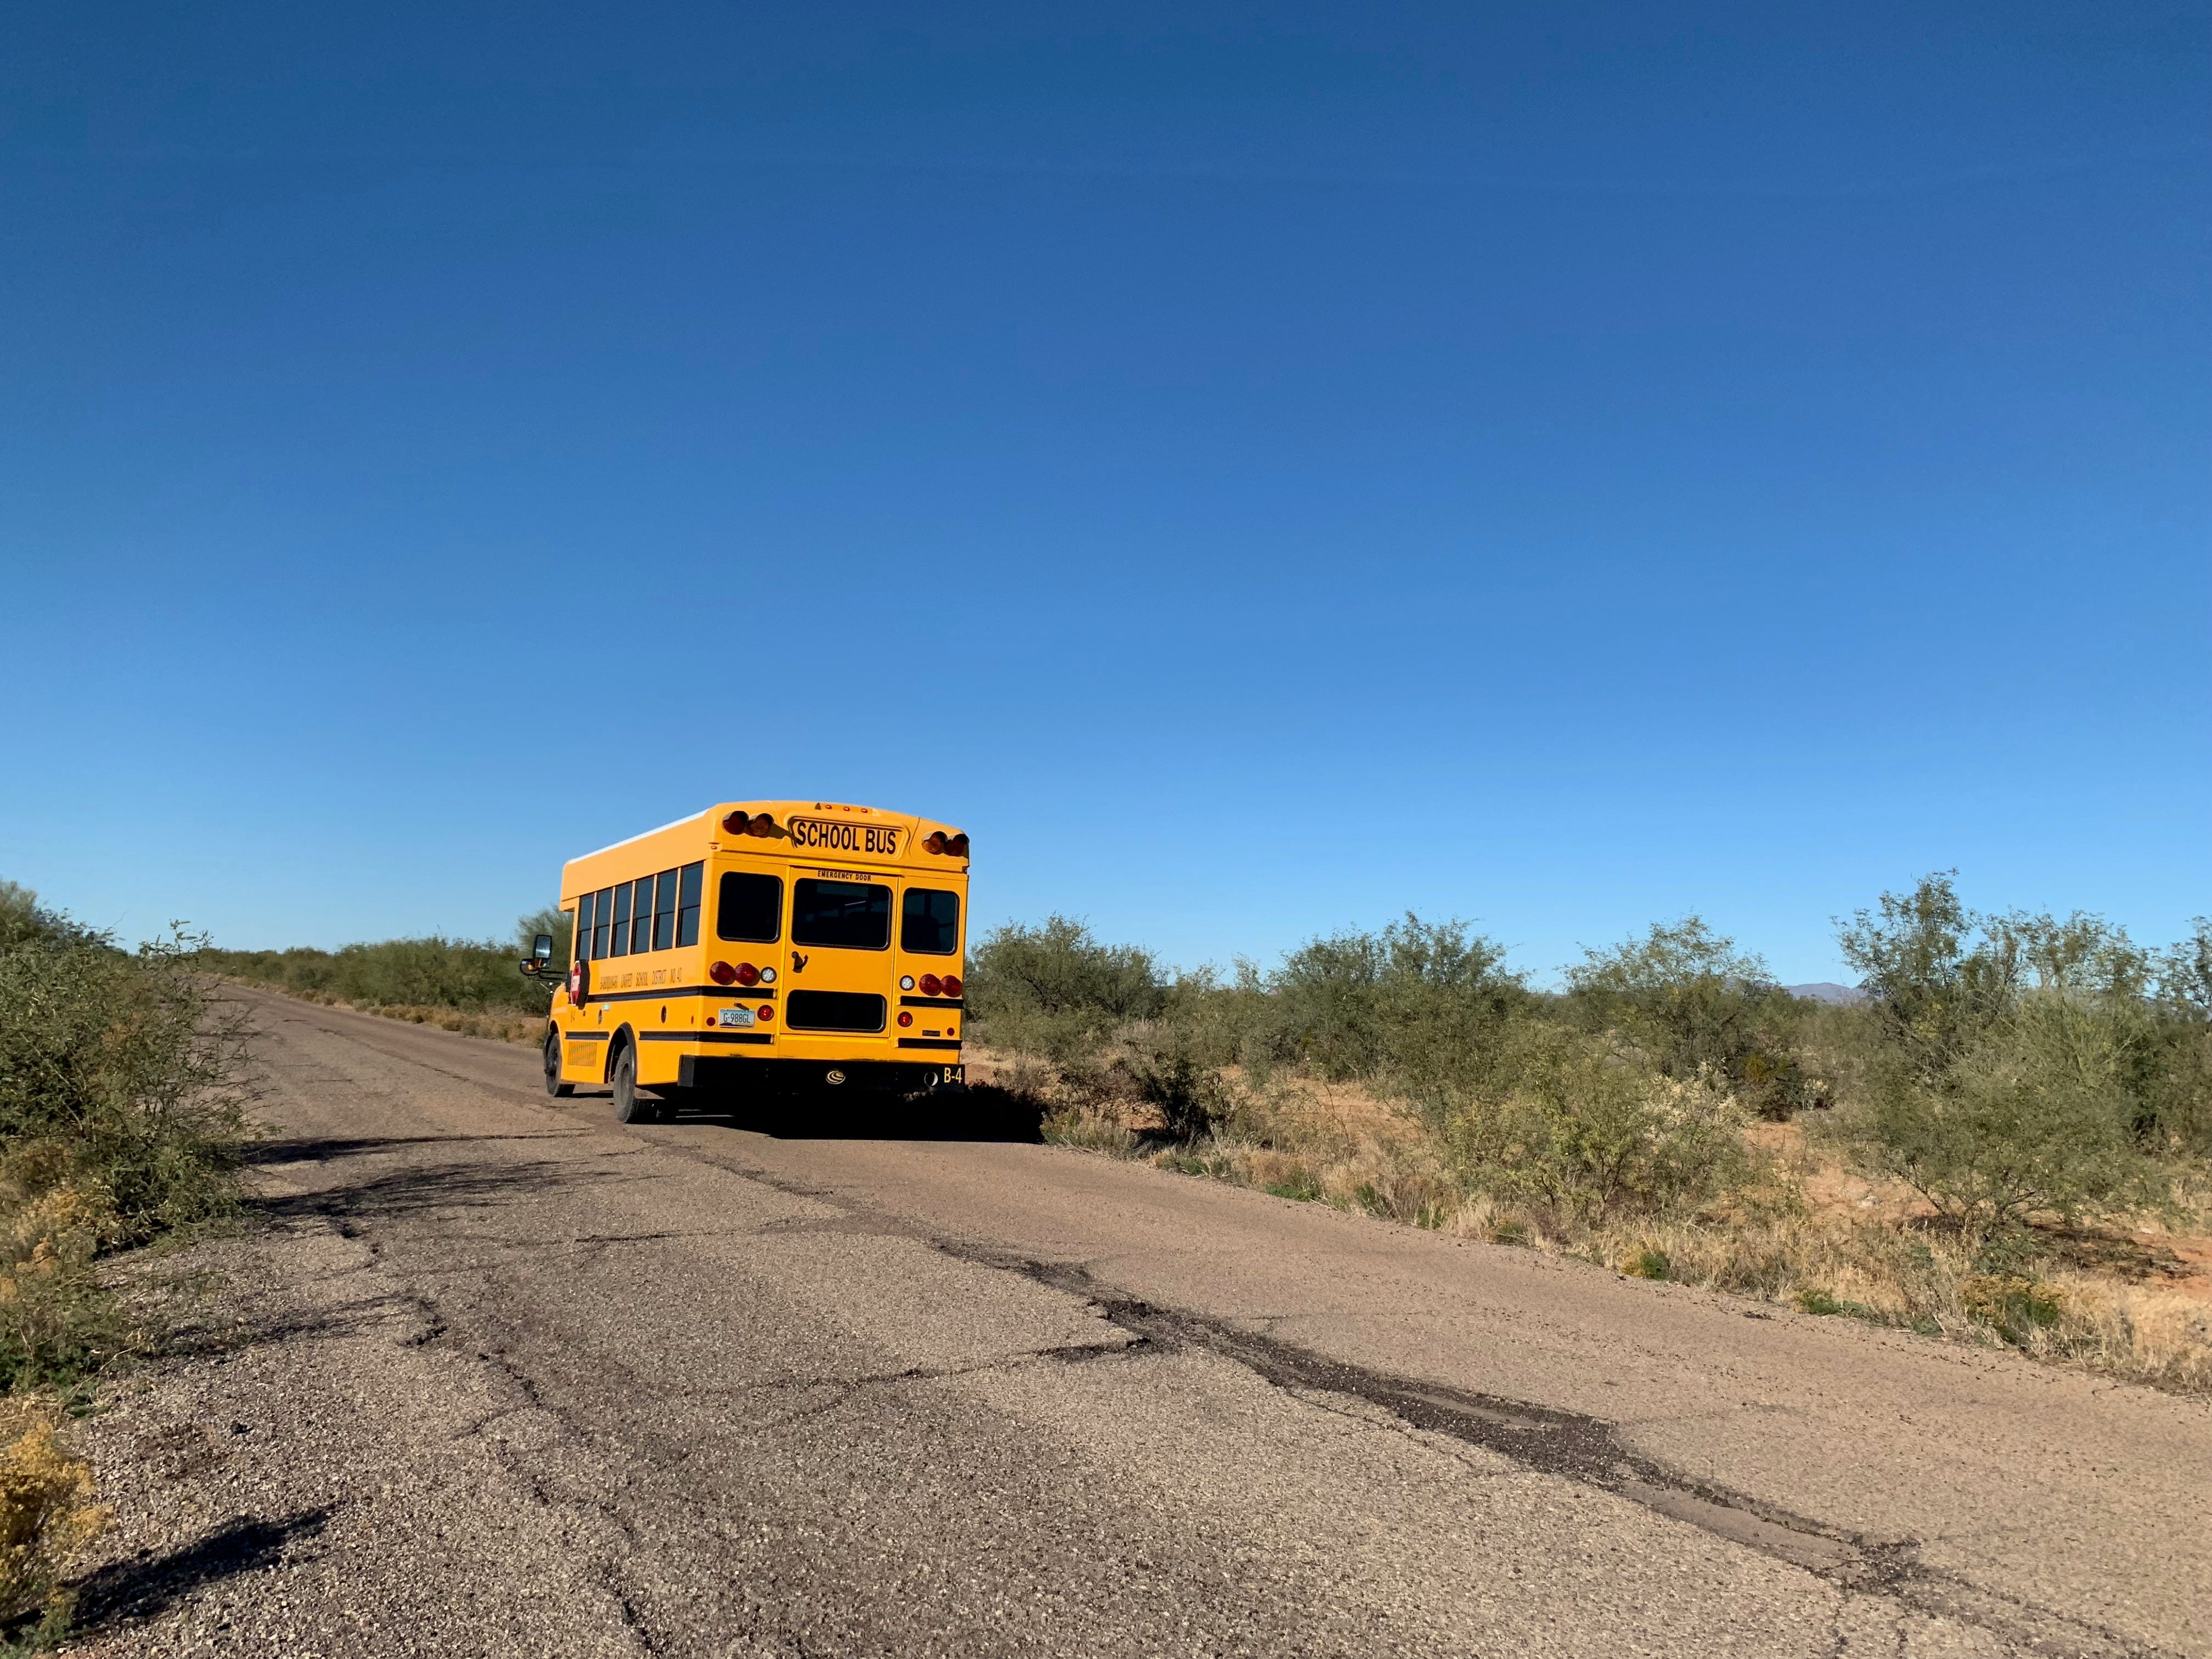 A school bus drives down a road to a village on the Tohono O'odham reservation in southern Arizona.